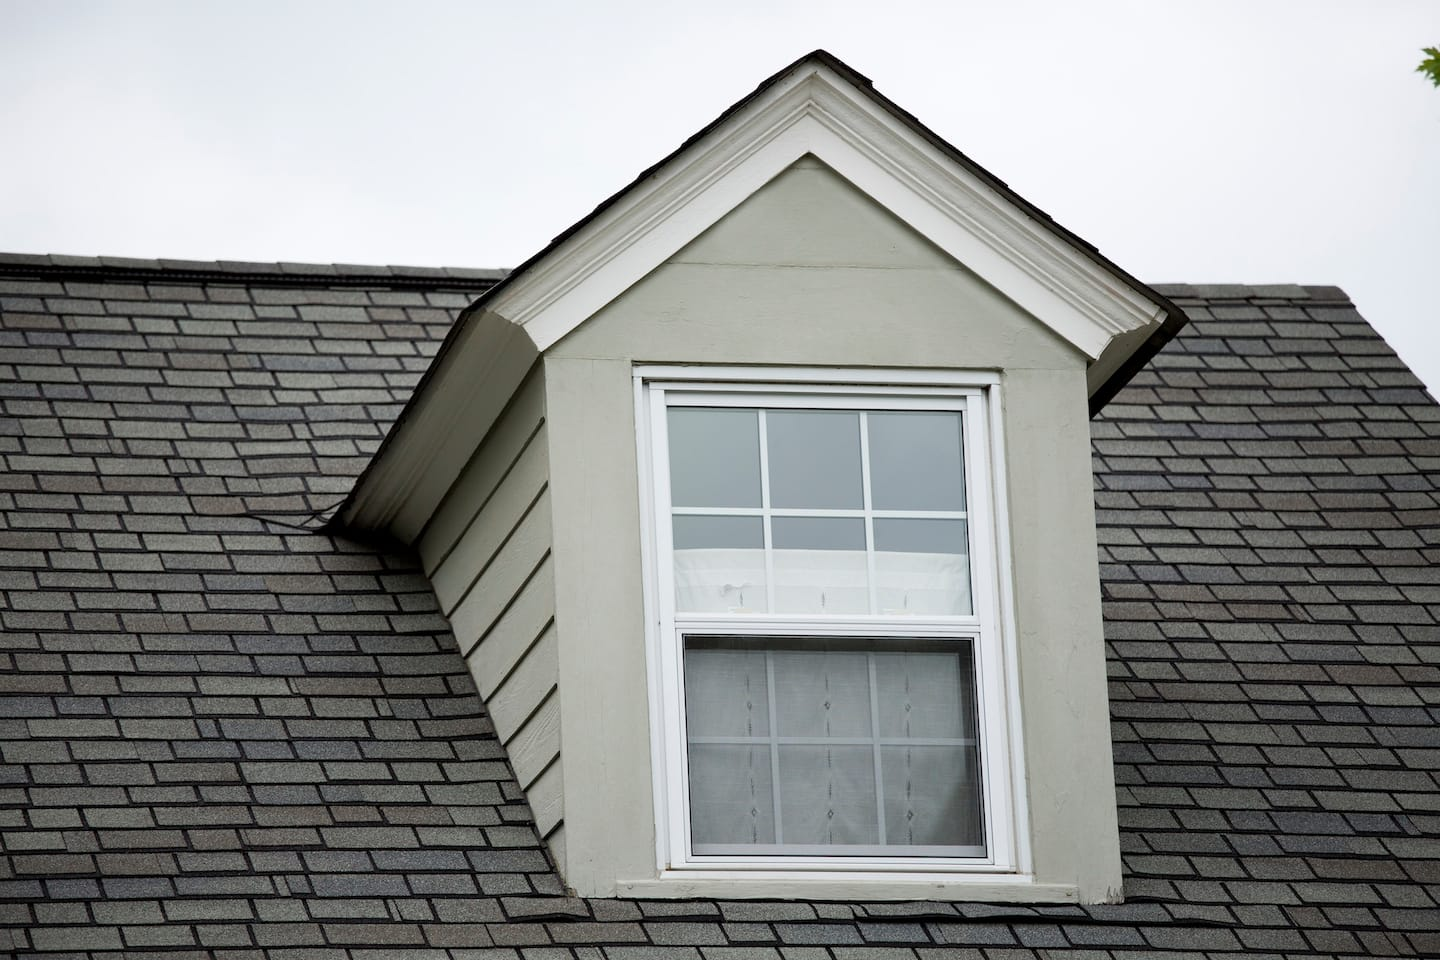 Dormer Additions Raise the Roof | Angie's List